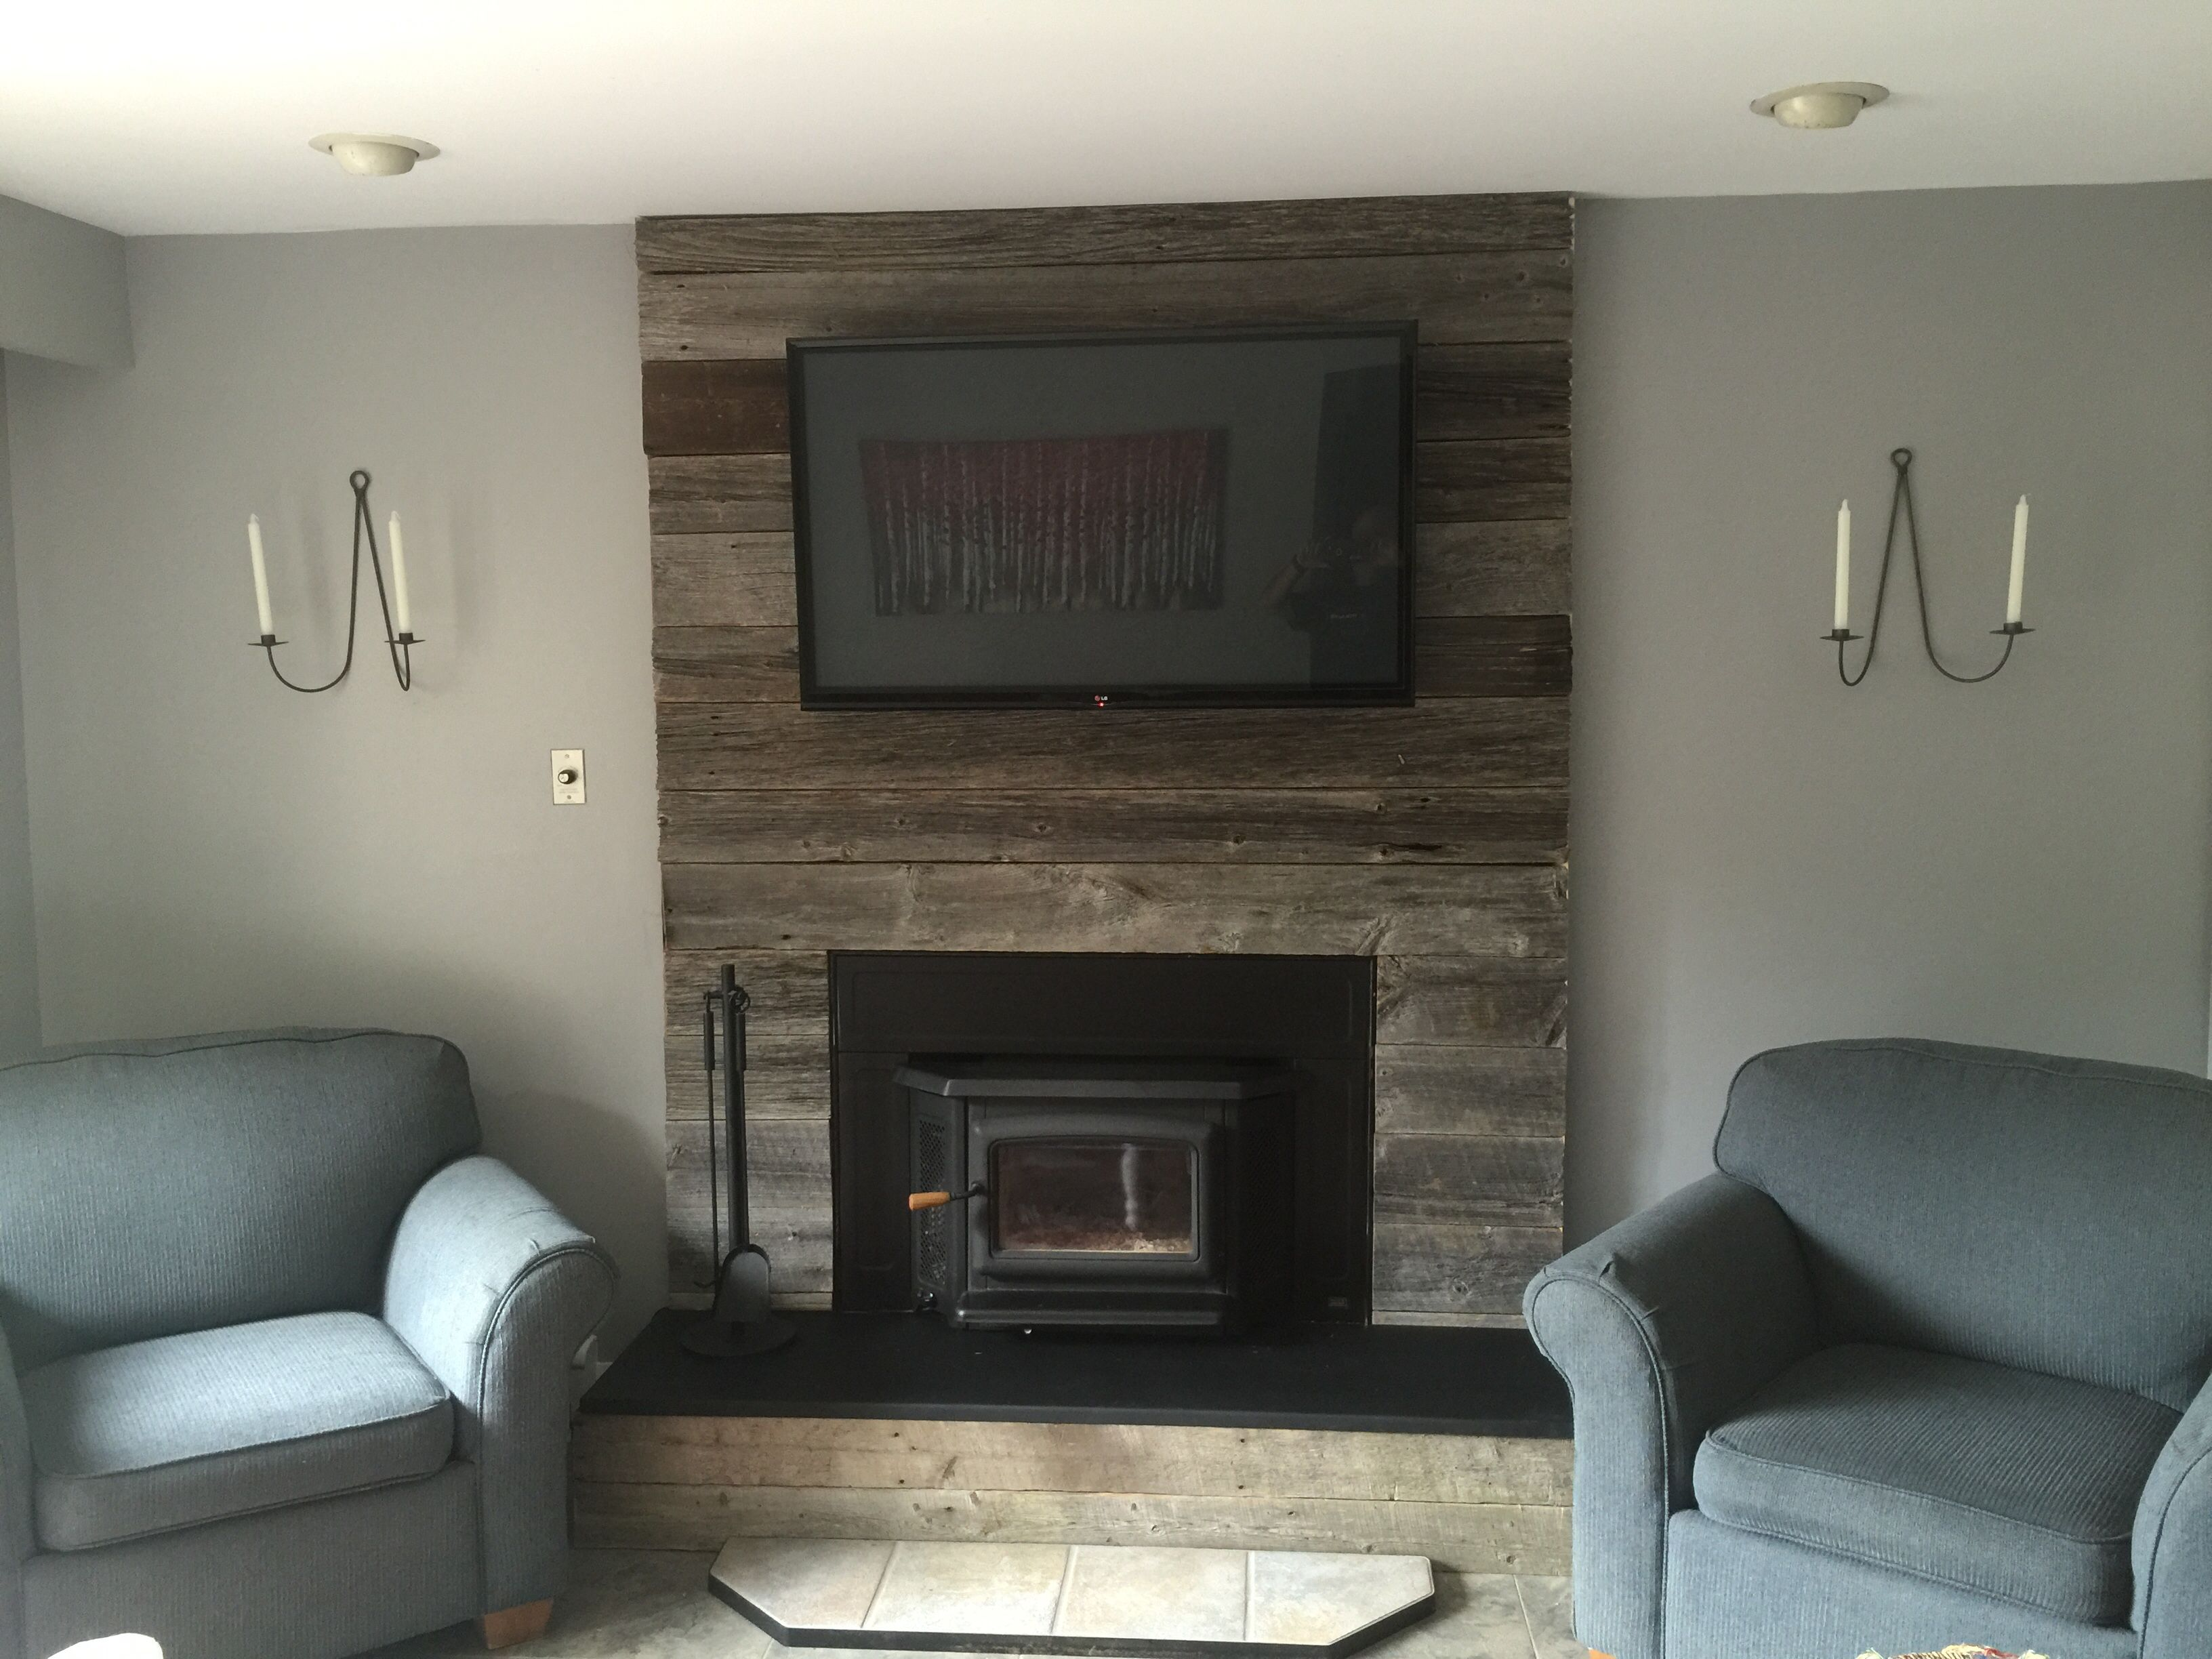 barnboard fireplace surround and plate steel hearth completed l